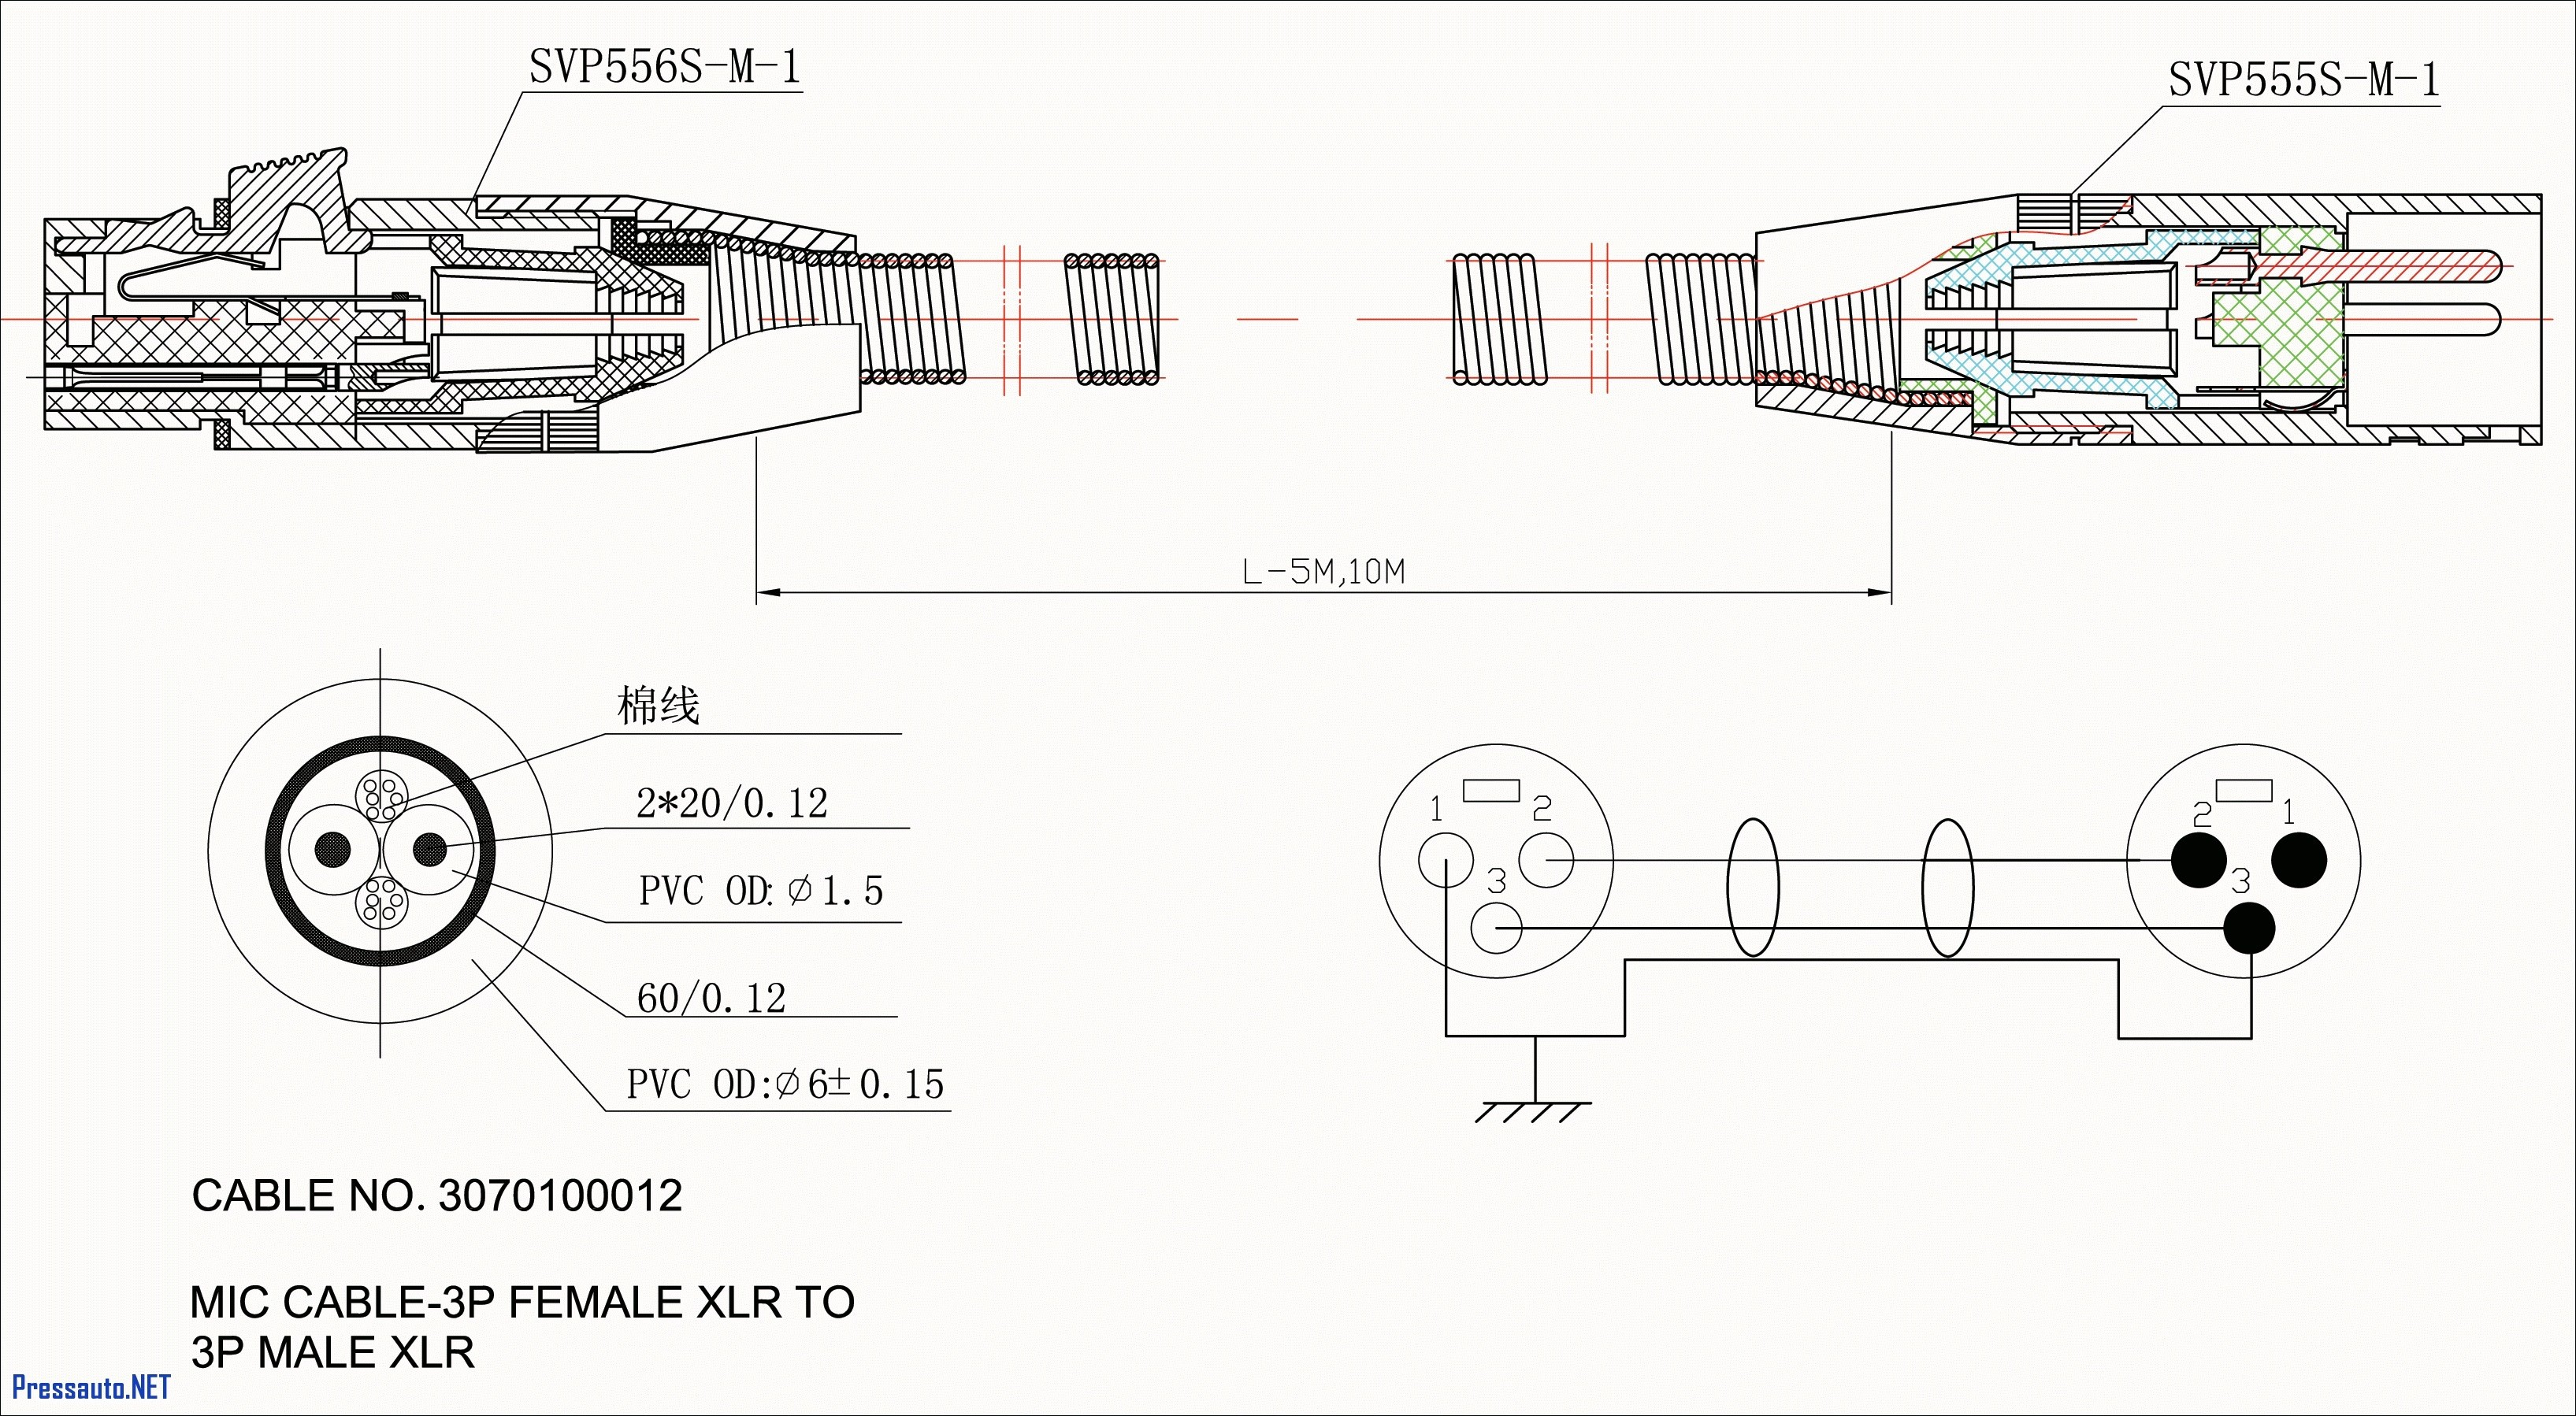 98 ford Explorer Engine Diagram 2005 ford Explorer Electrical Wiring Diagrams Detailed Schematic Of 98 ford Explorer Engine Diagram